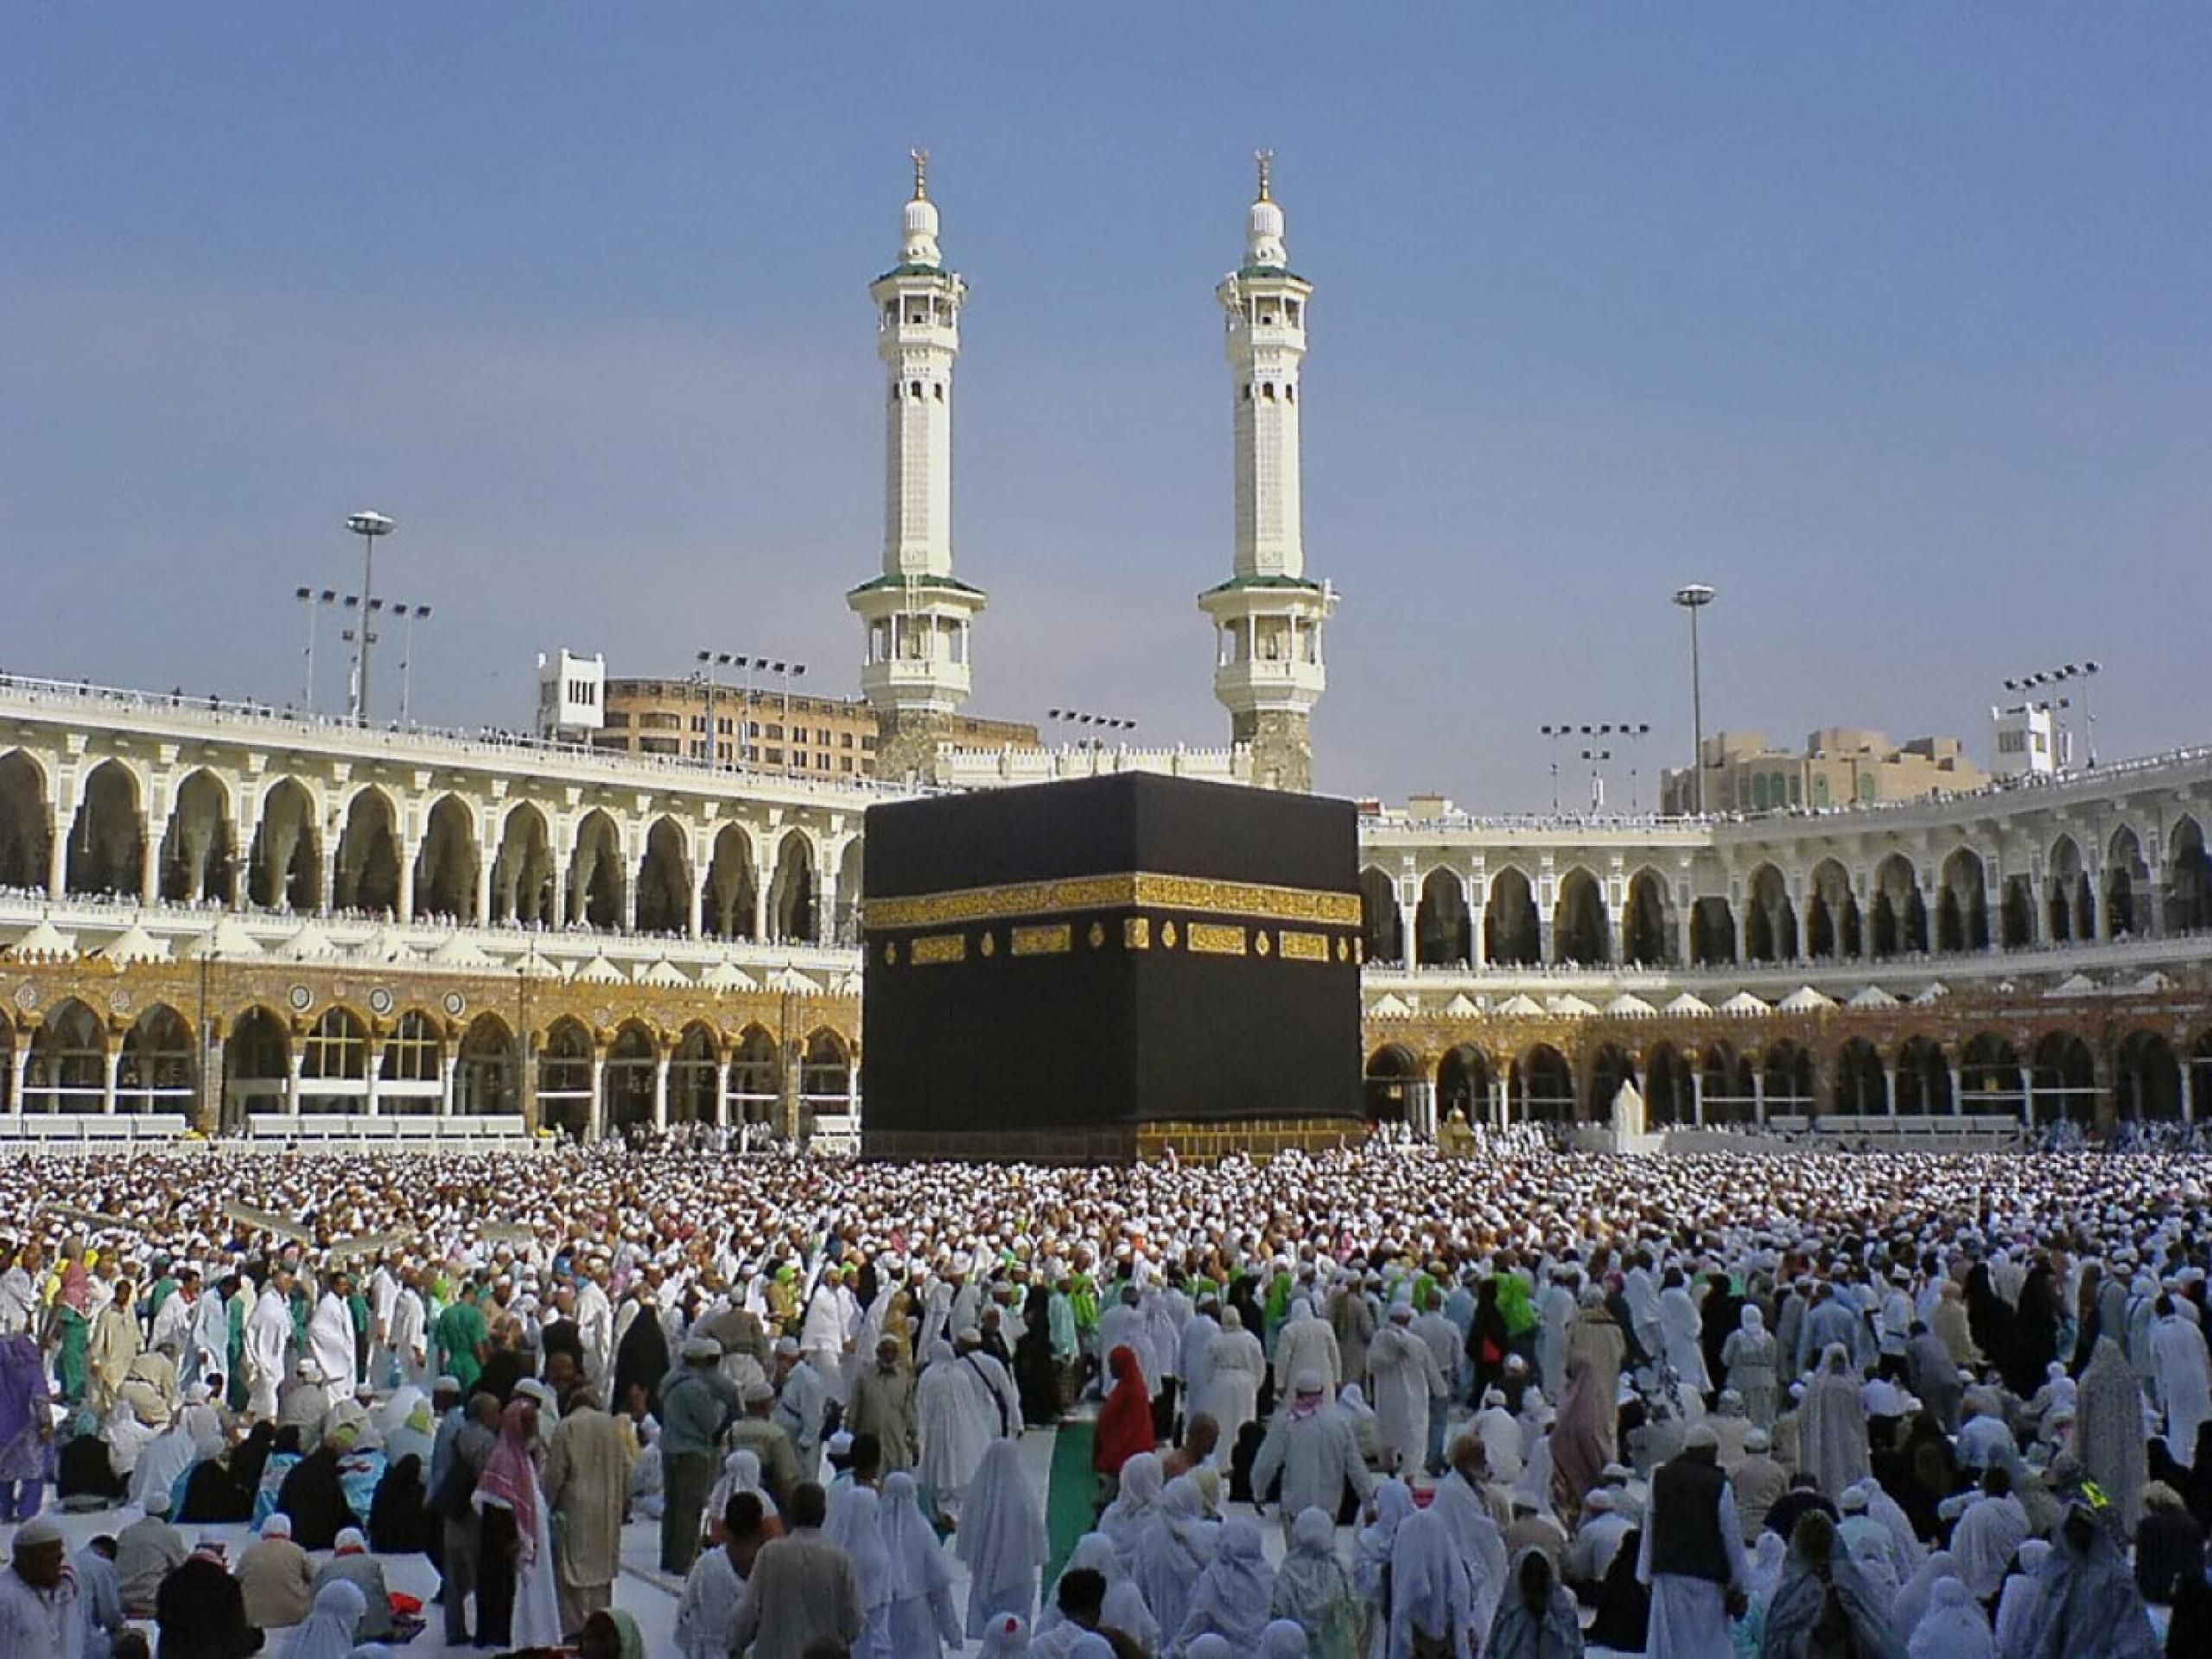 Mecca madina ke wallpapers download